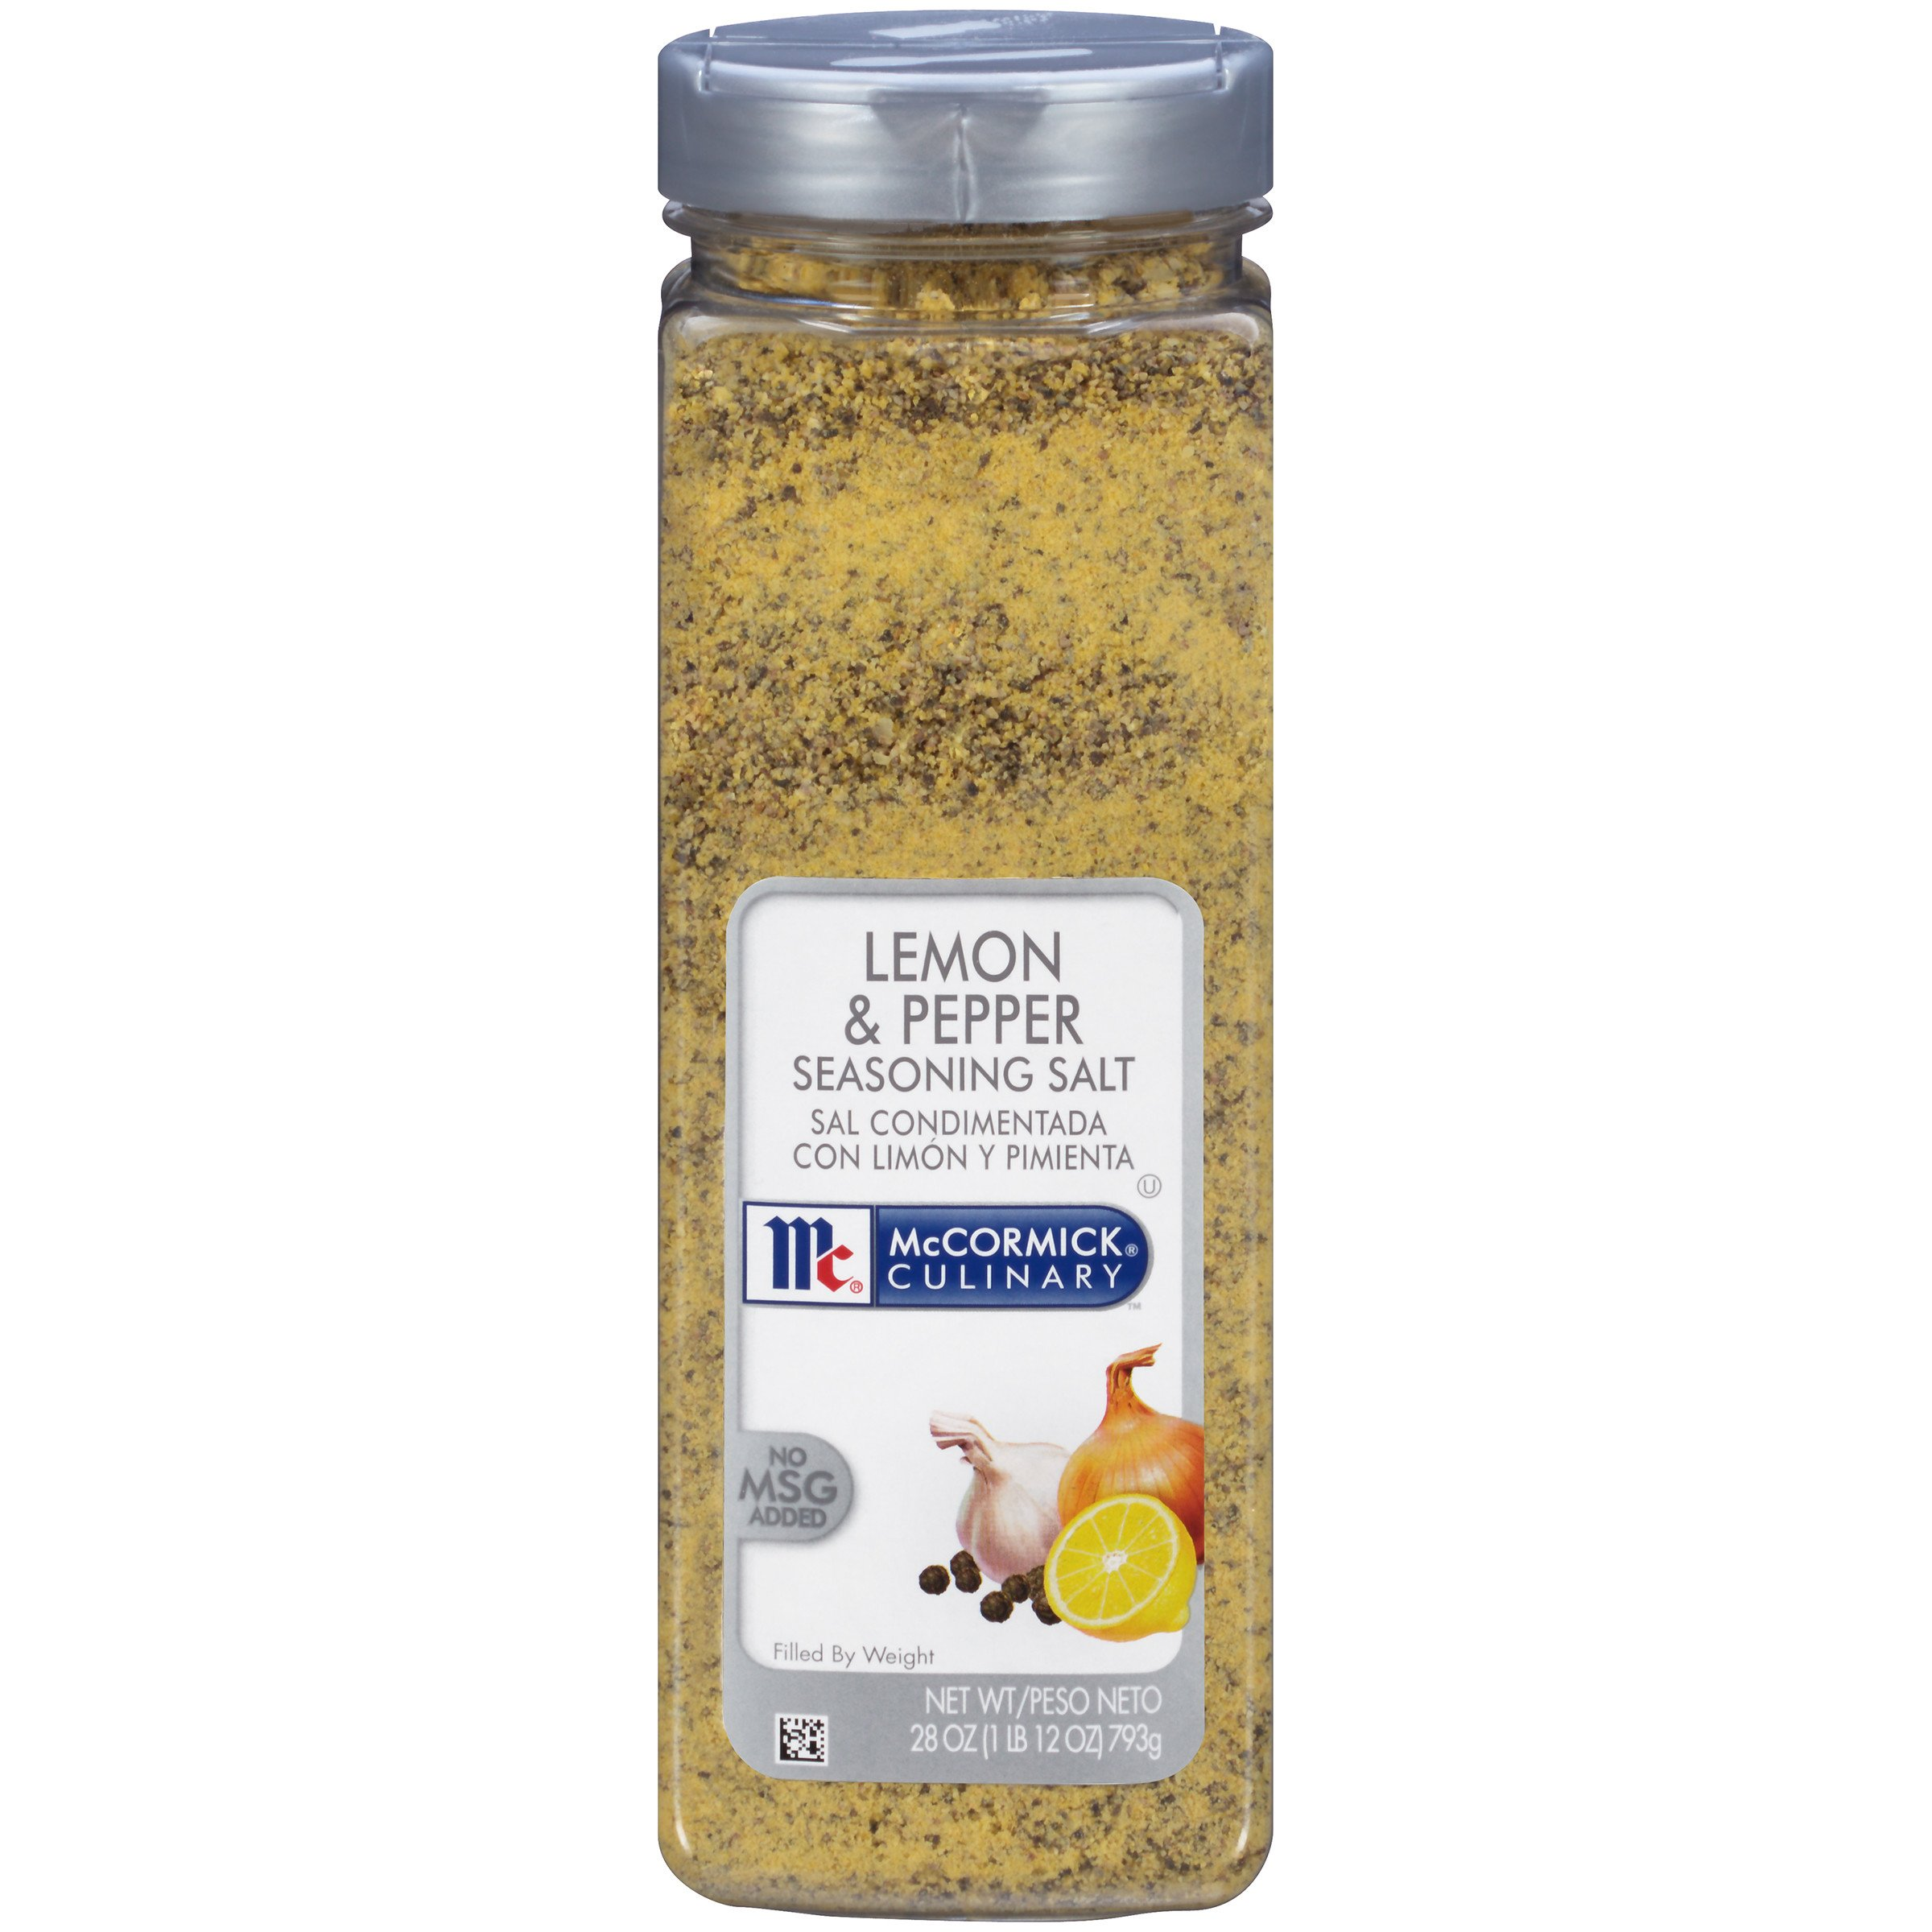 Mccormick Lemon & Pepper Seasoning (no Msg), 28-Ounce Container (Pack of 2)